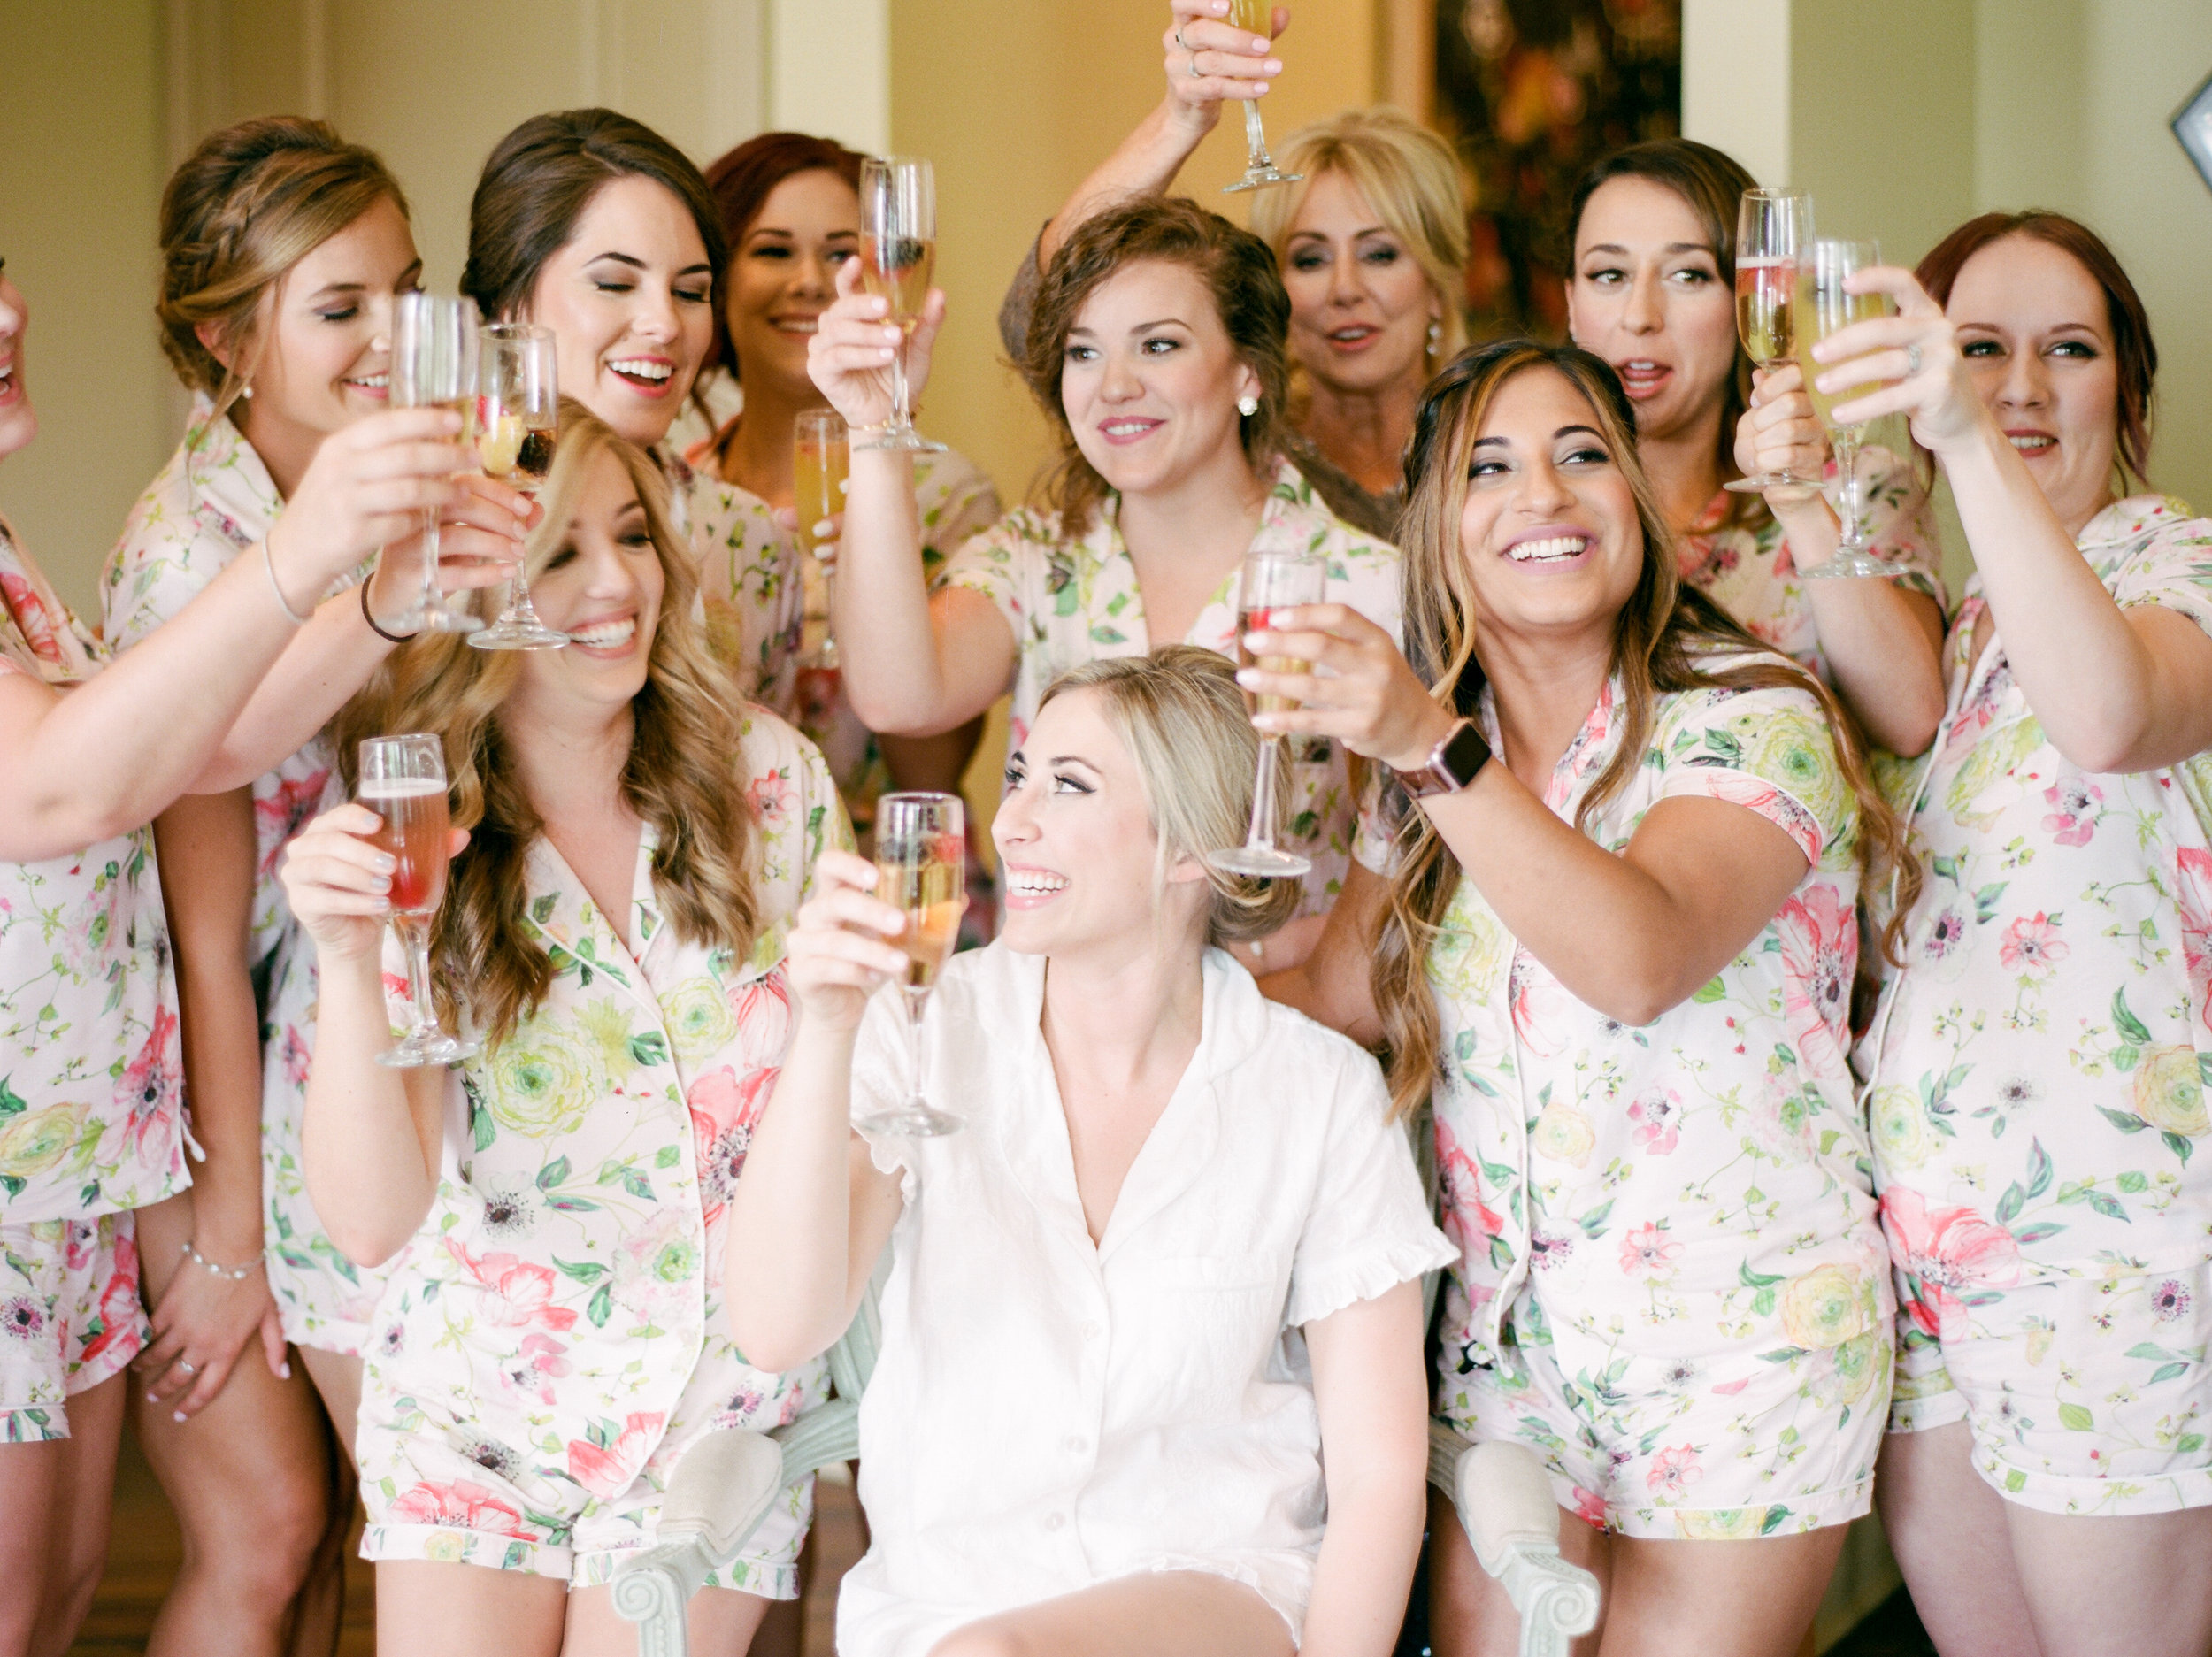 Southern Fete, Southern Wedding, Bride and Bridesmaid, Champagne toast, Sarah Beth Photography, Bleu Coiffure